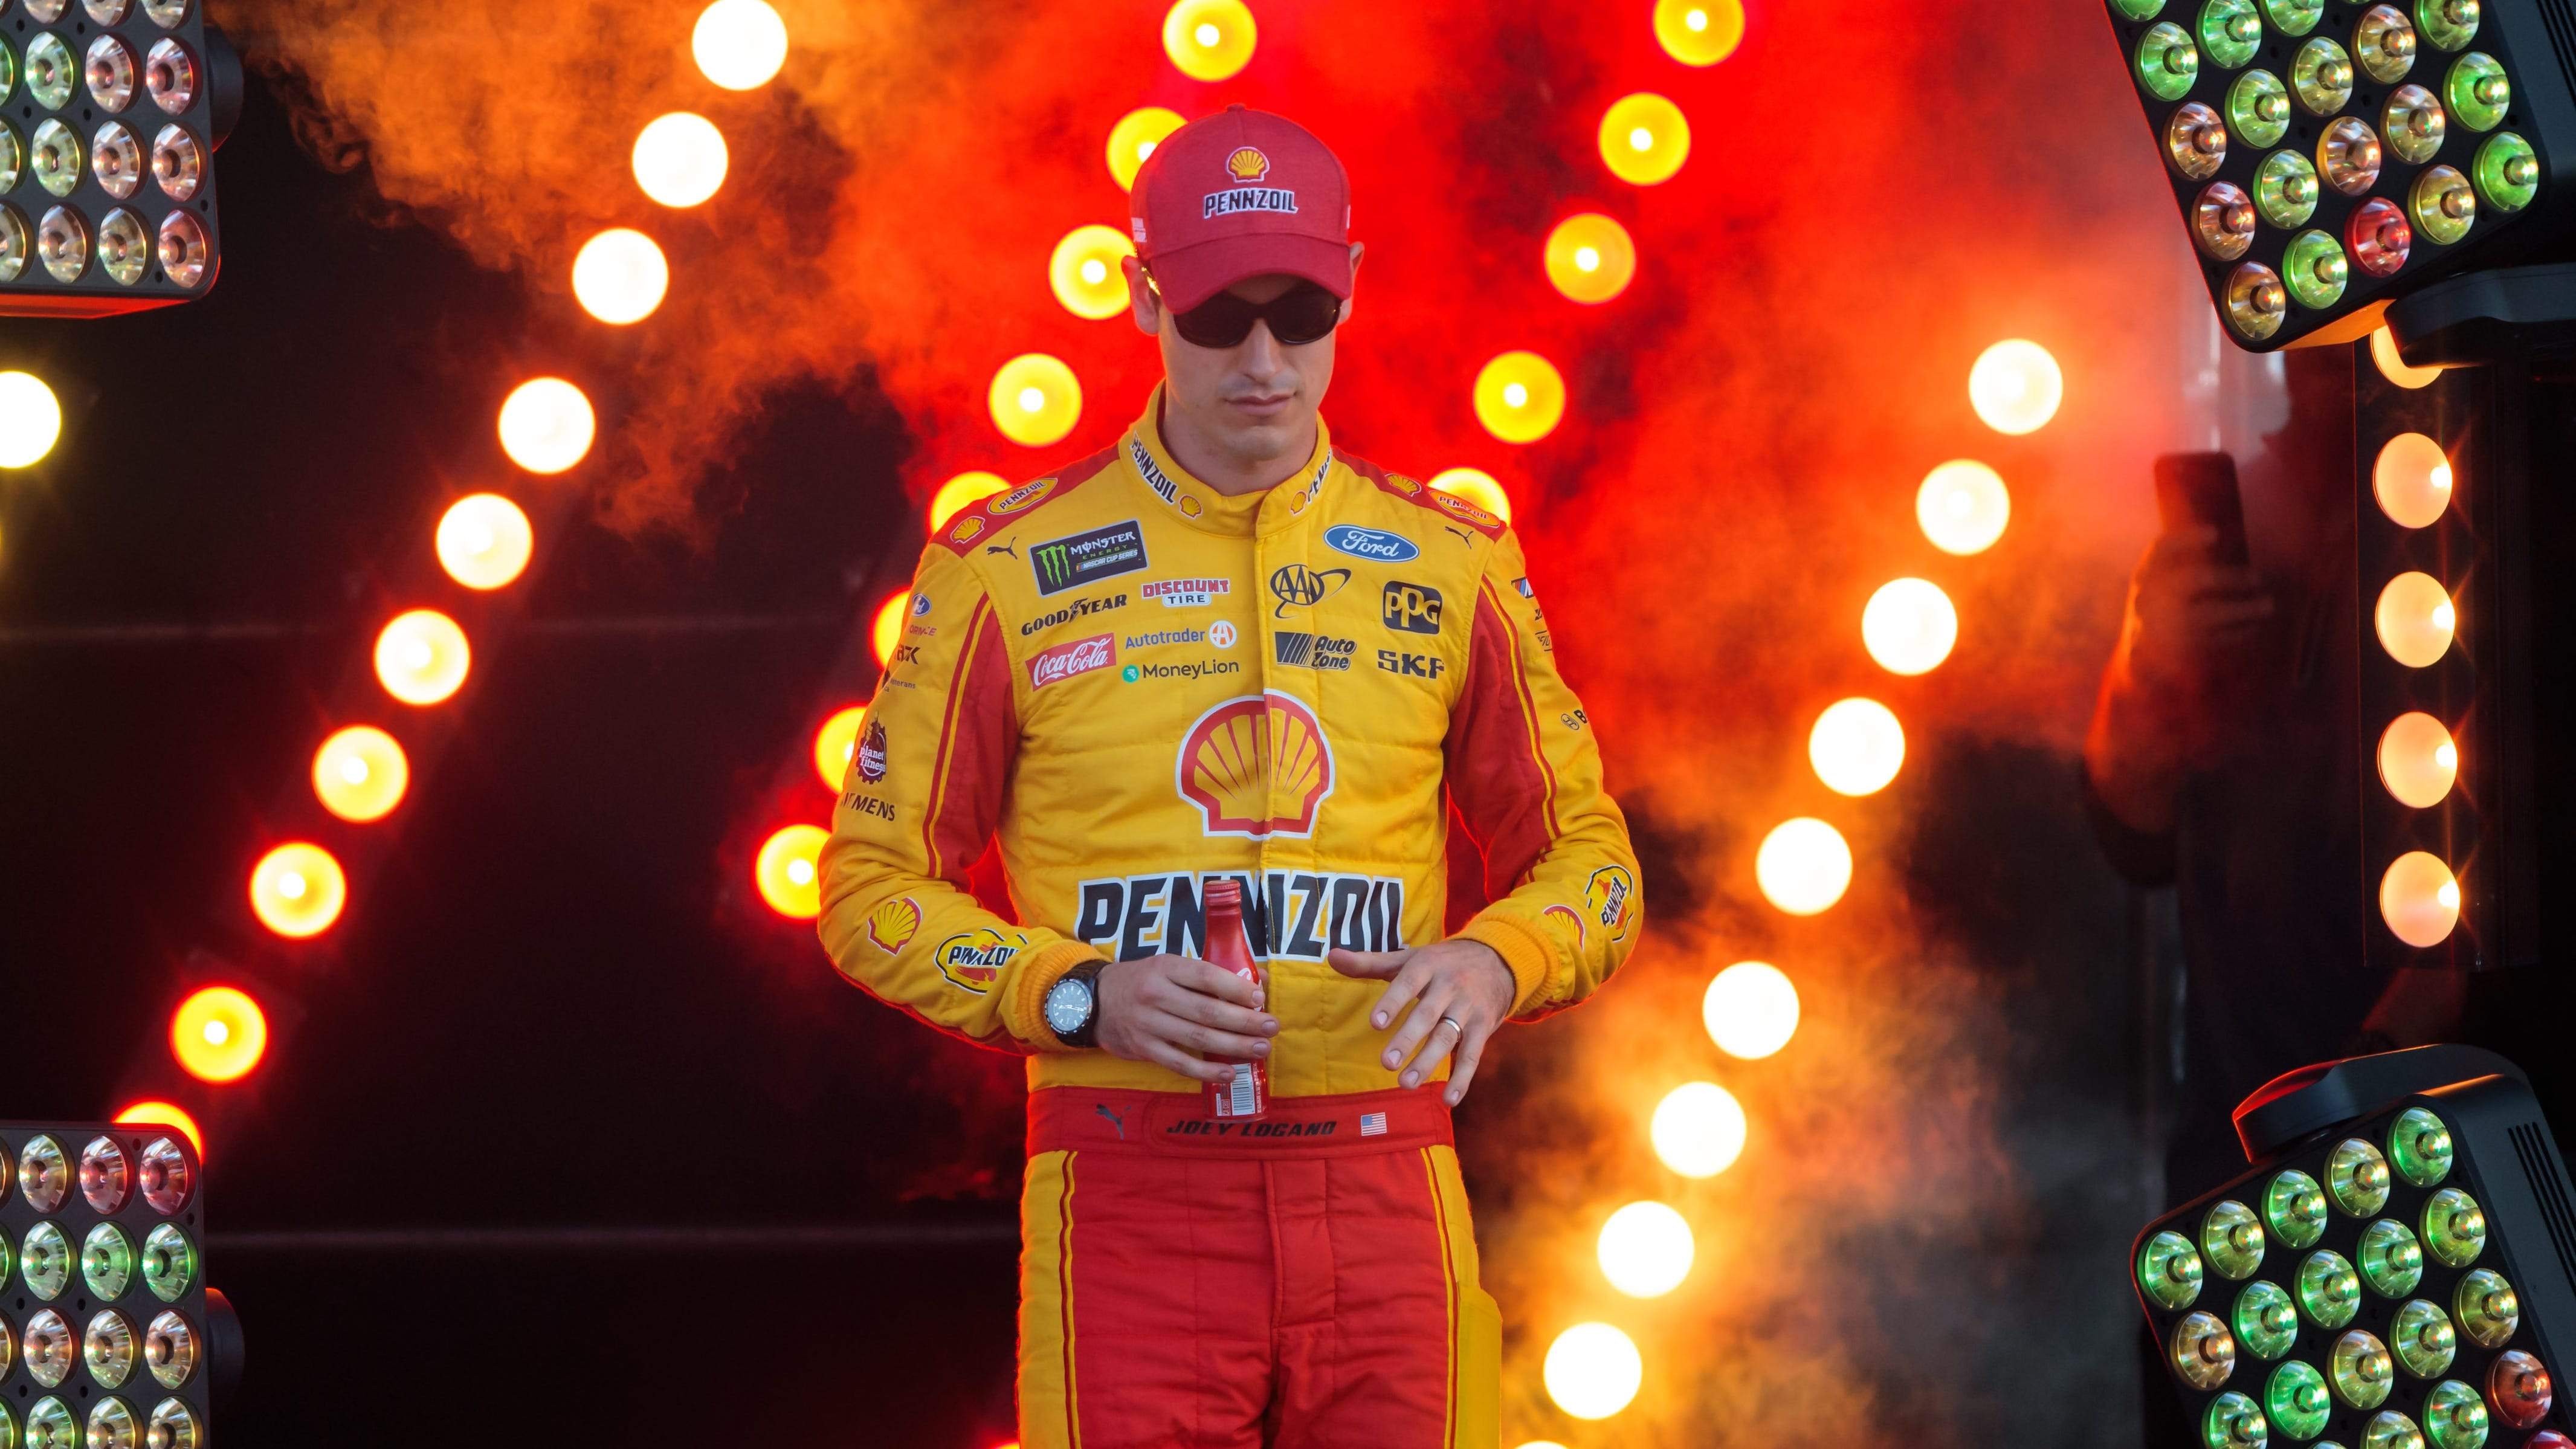 Joey Logano won his first NASCAR Cup Series championship Sunday at Homestead-Miami Speedway.